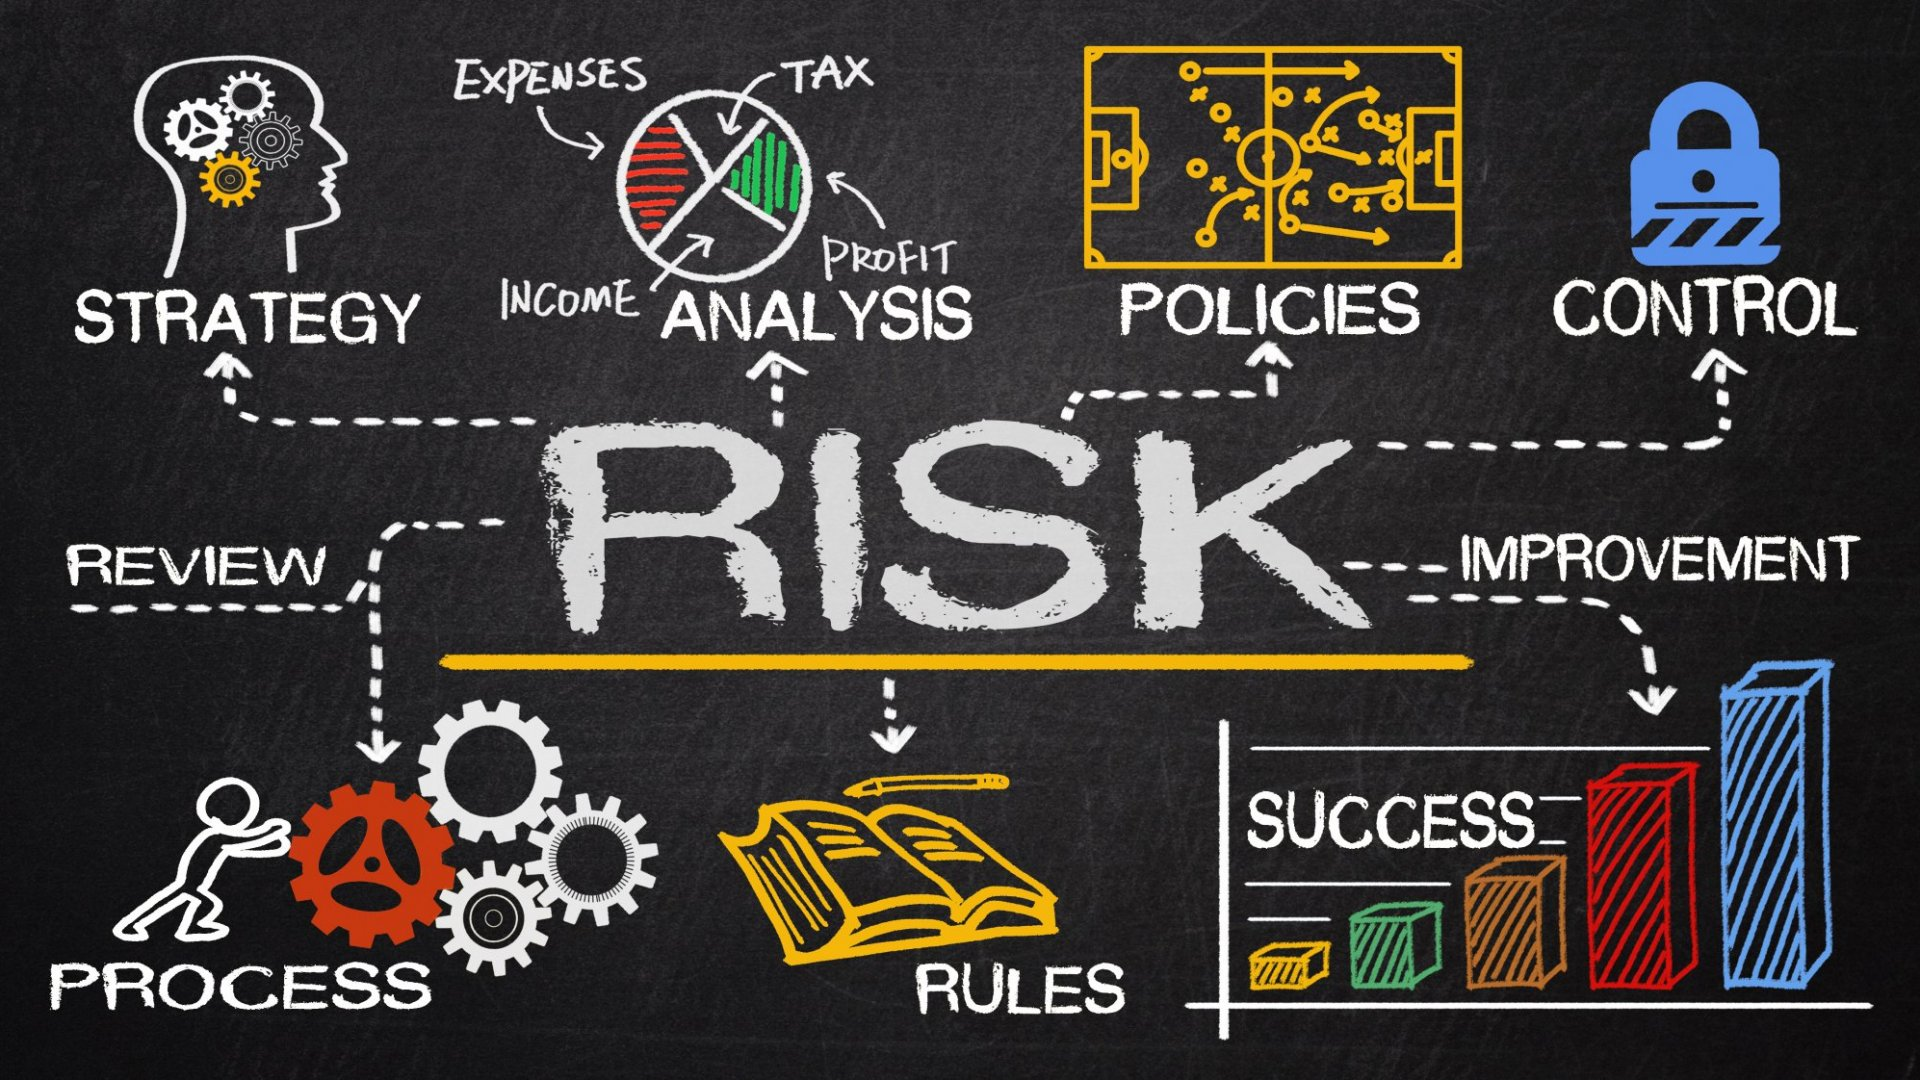 Creating a Culture of Risk Taking